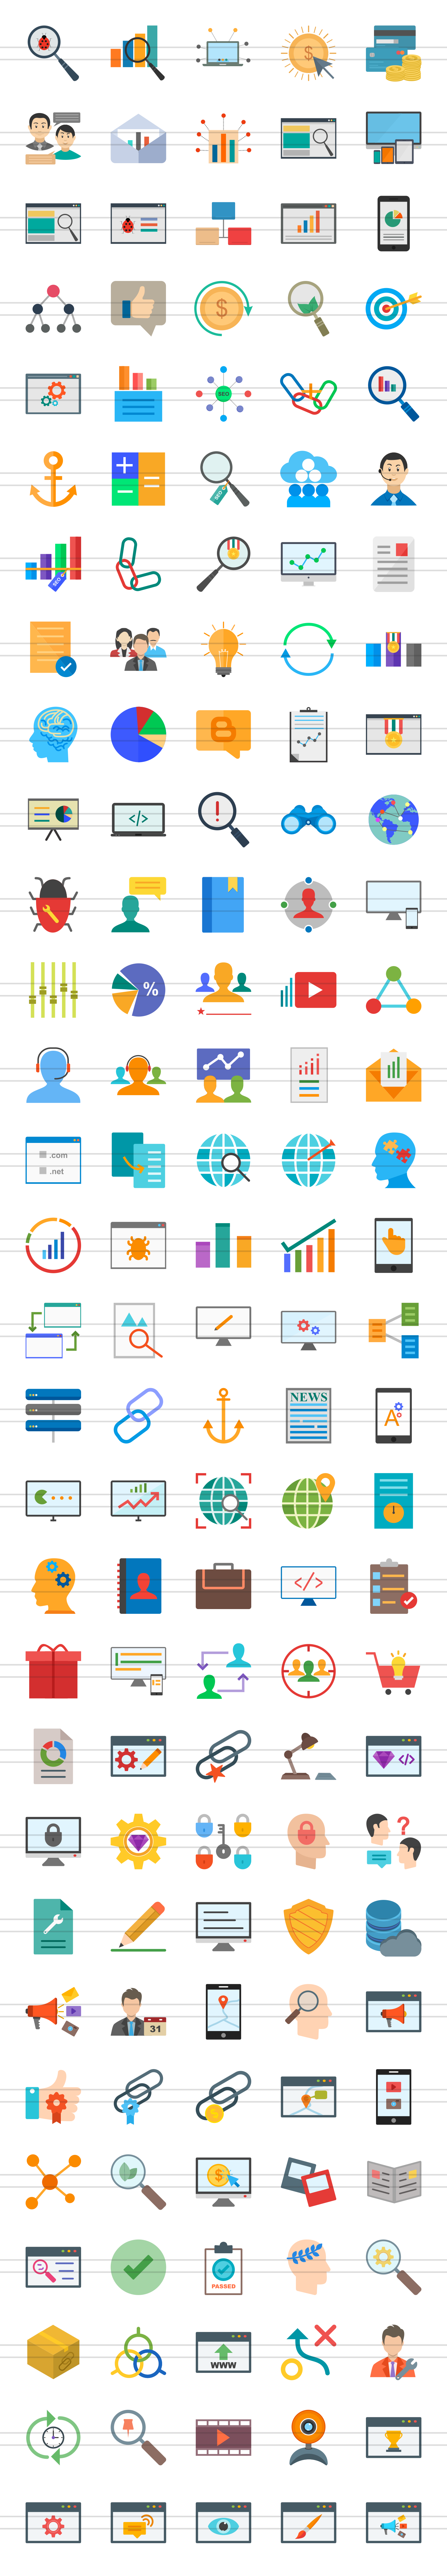 150 IT Services Flat Icons example image 3